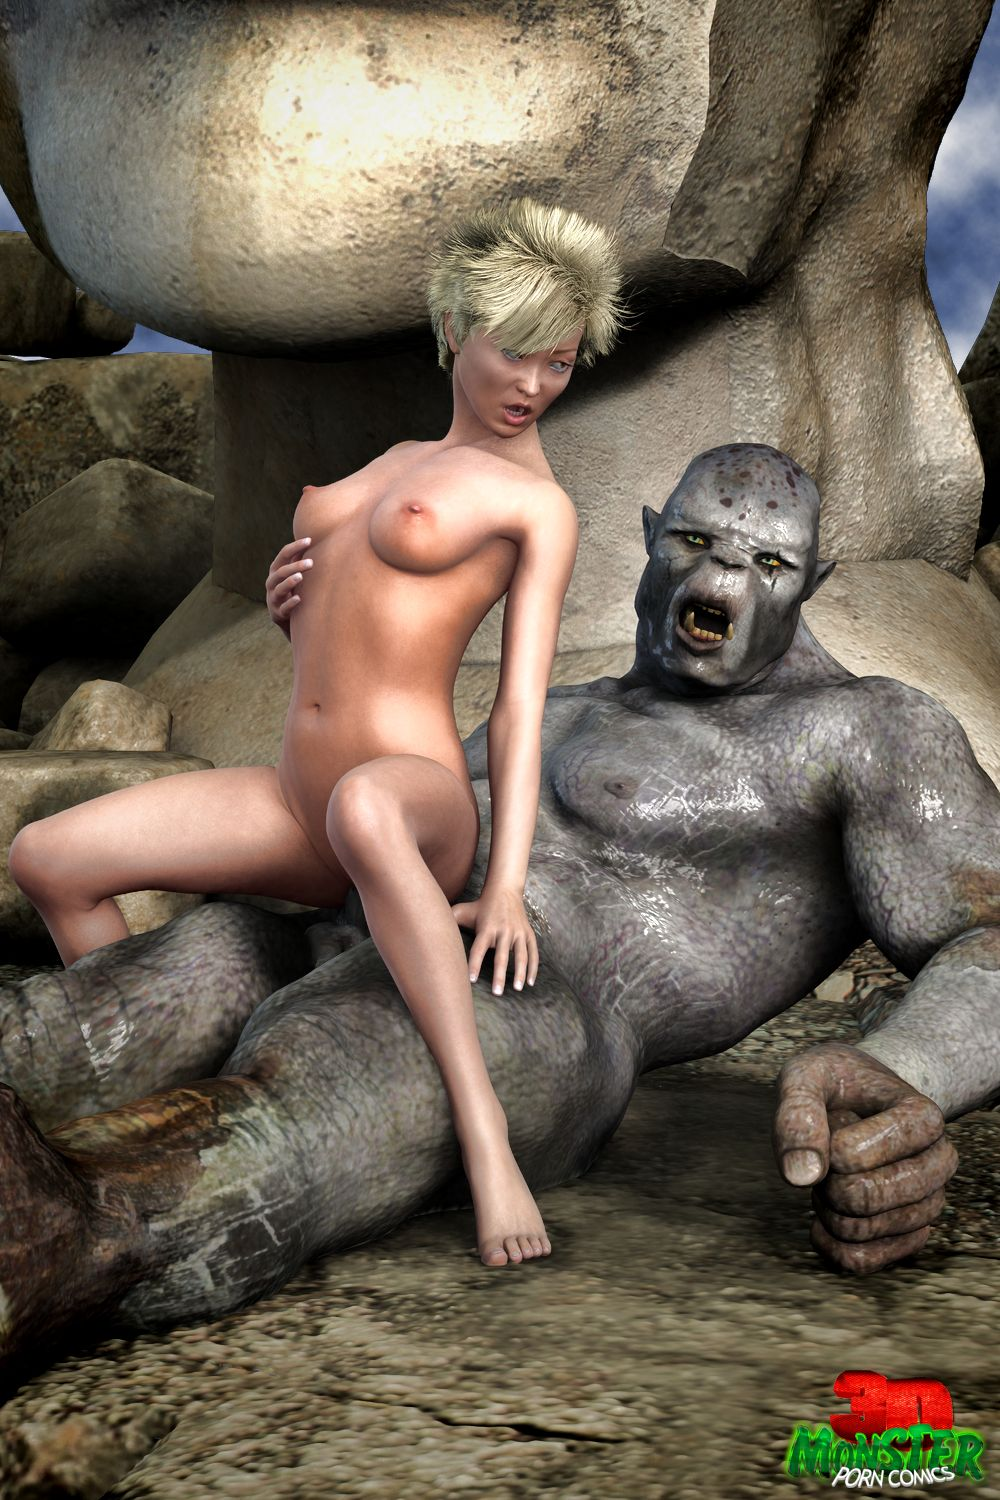 Golem fuck elf nude nsfw photos